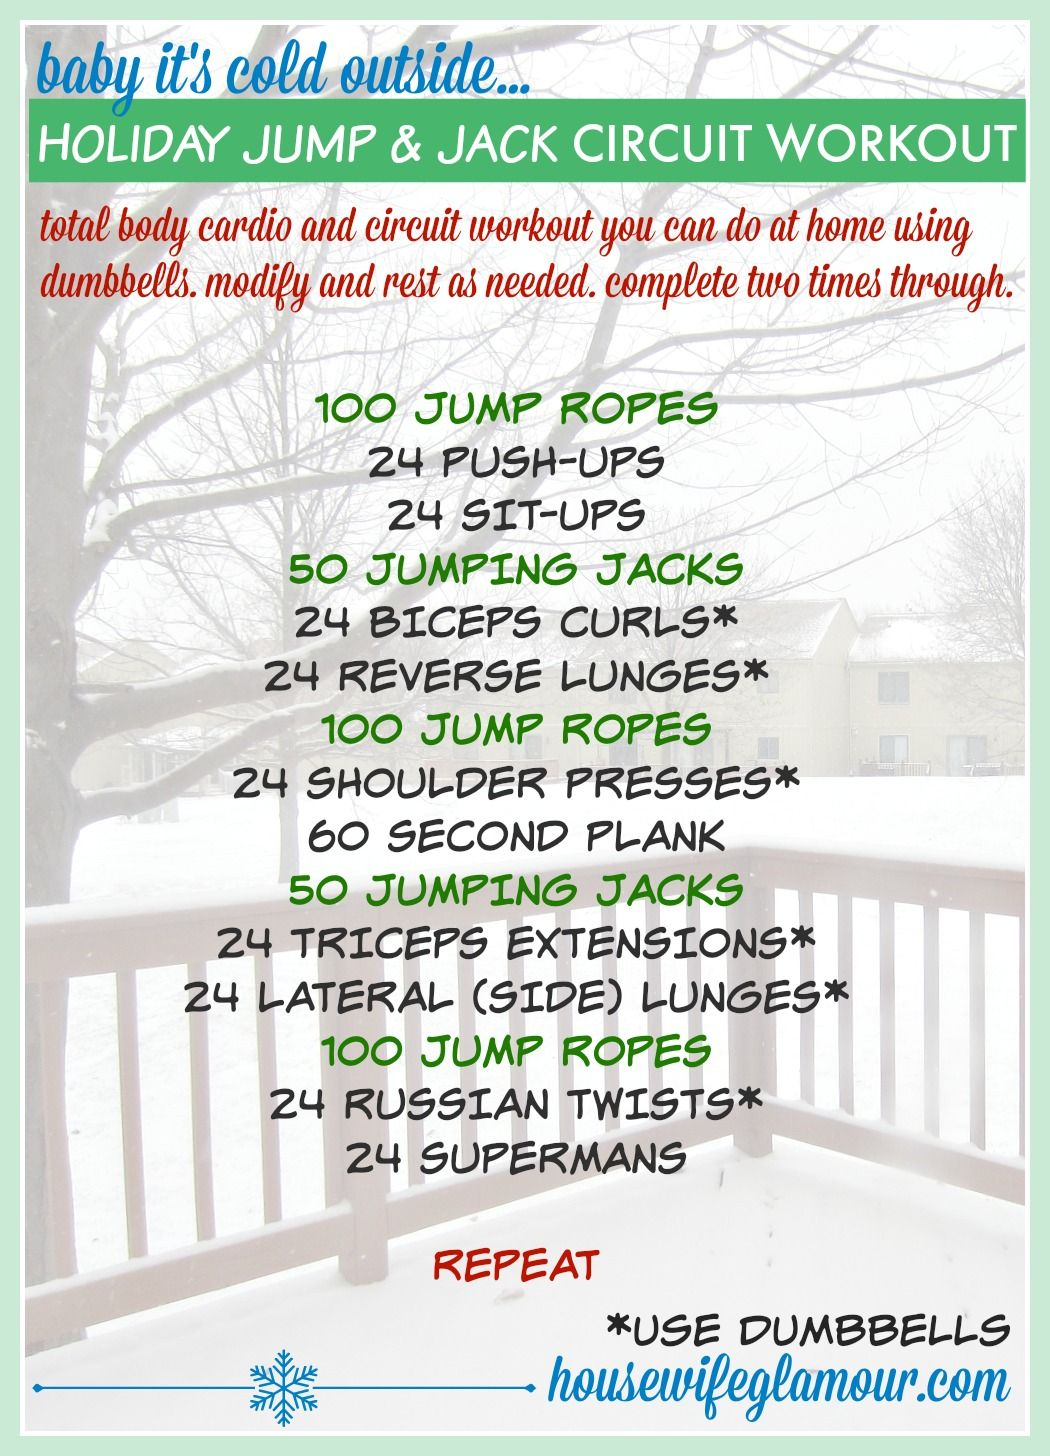 Holiday Jump And Jack Cardio Circuit Workout Healthy Habits Full Body With Weights Workouts Pinterest Training